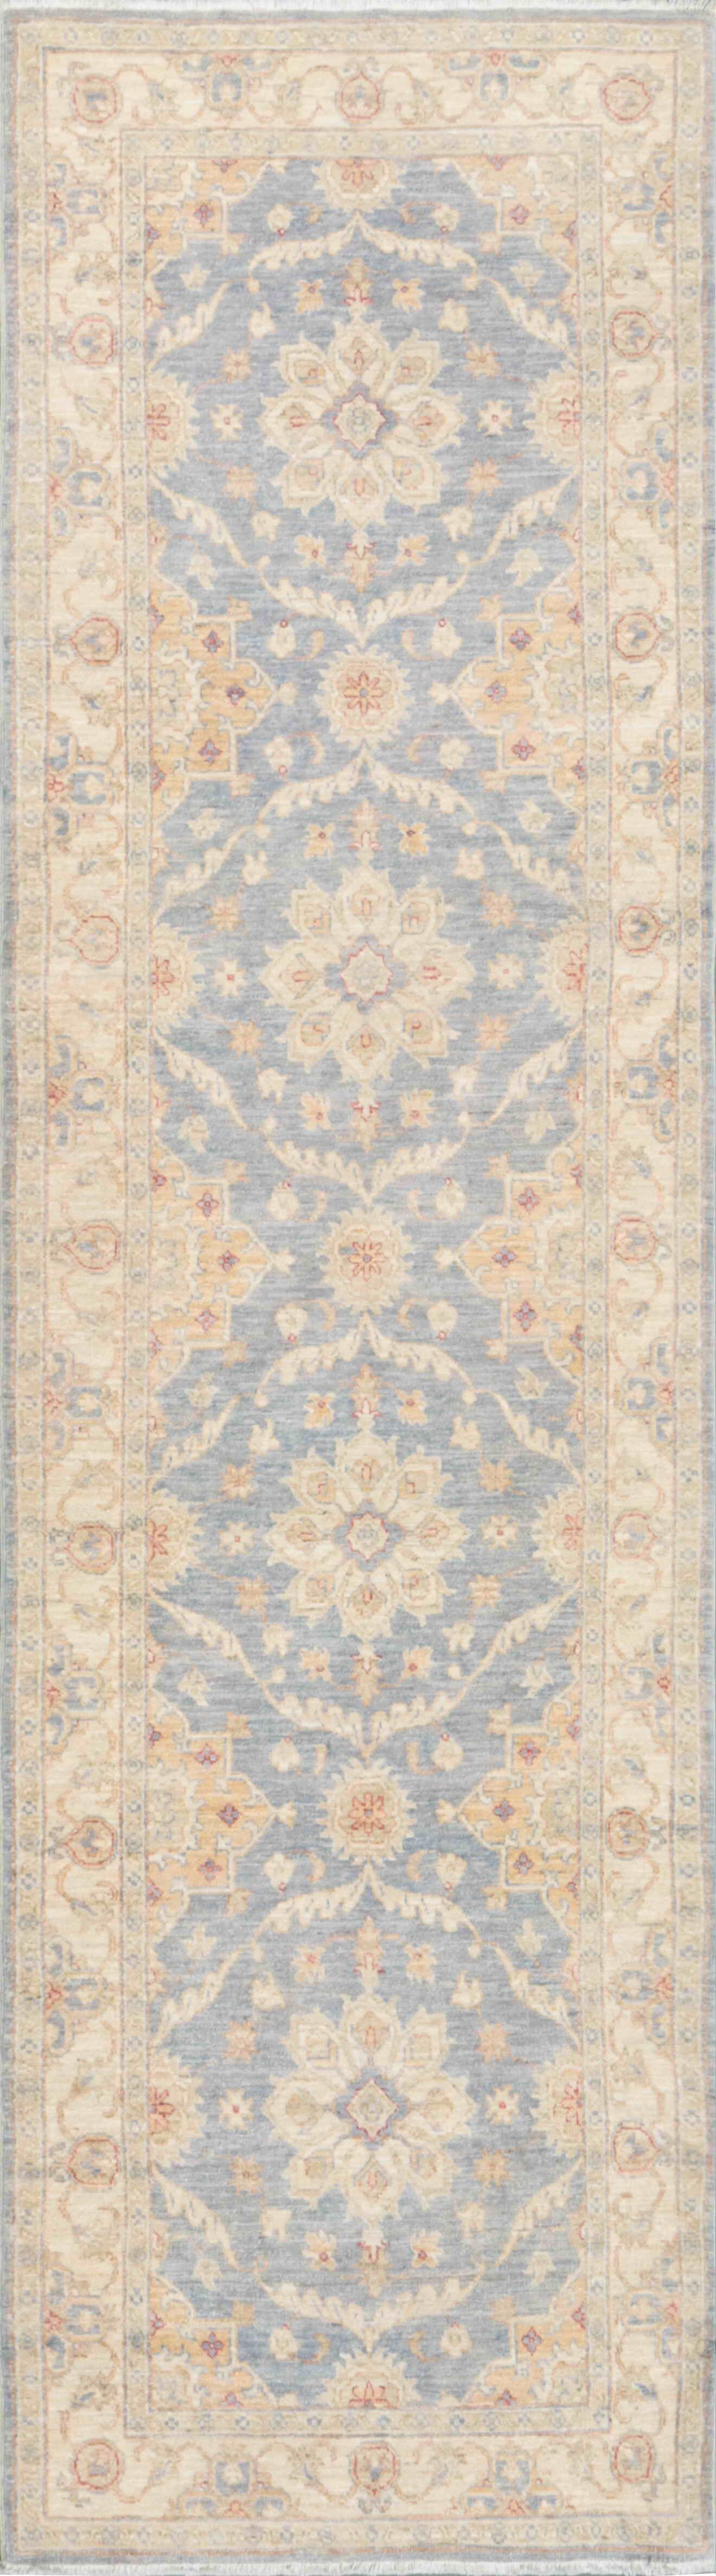 Tabriz Hand-Knotted Light Blue Area Rug